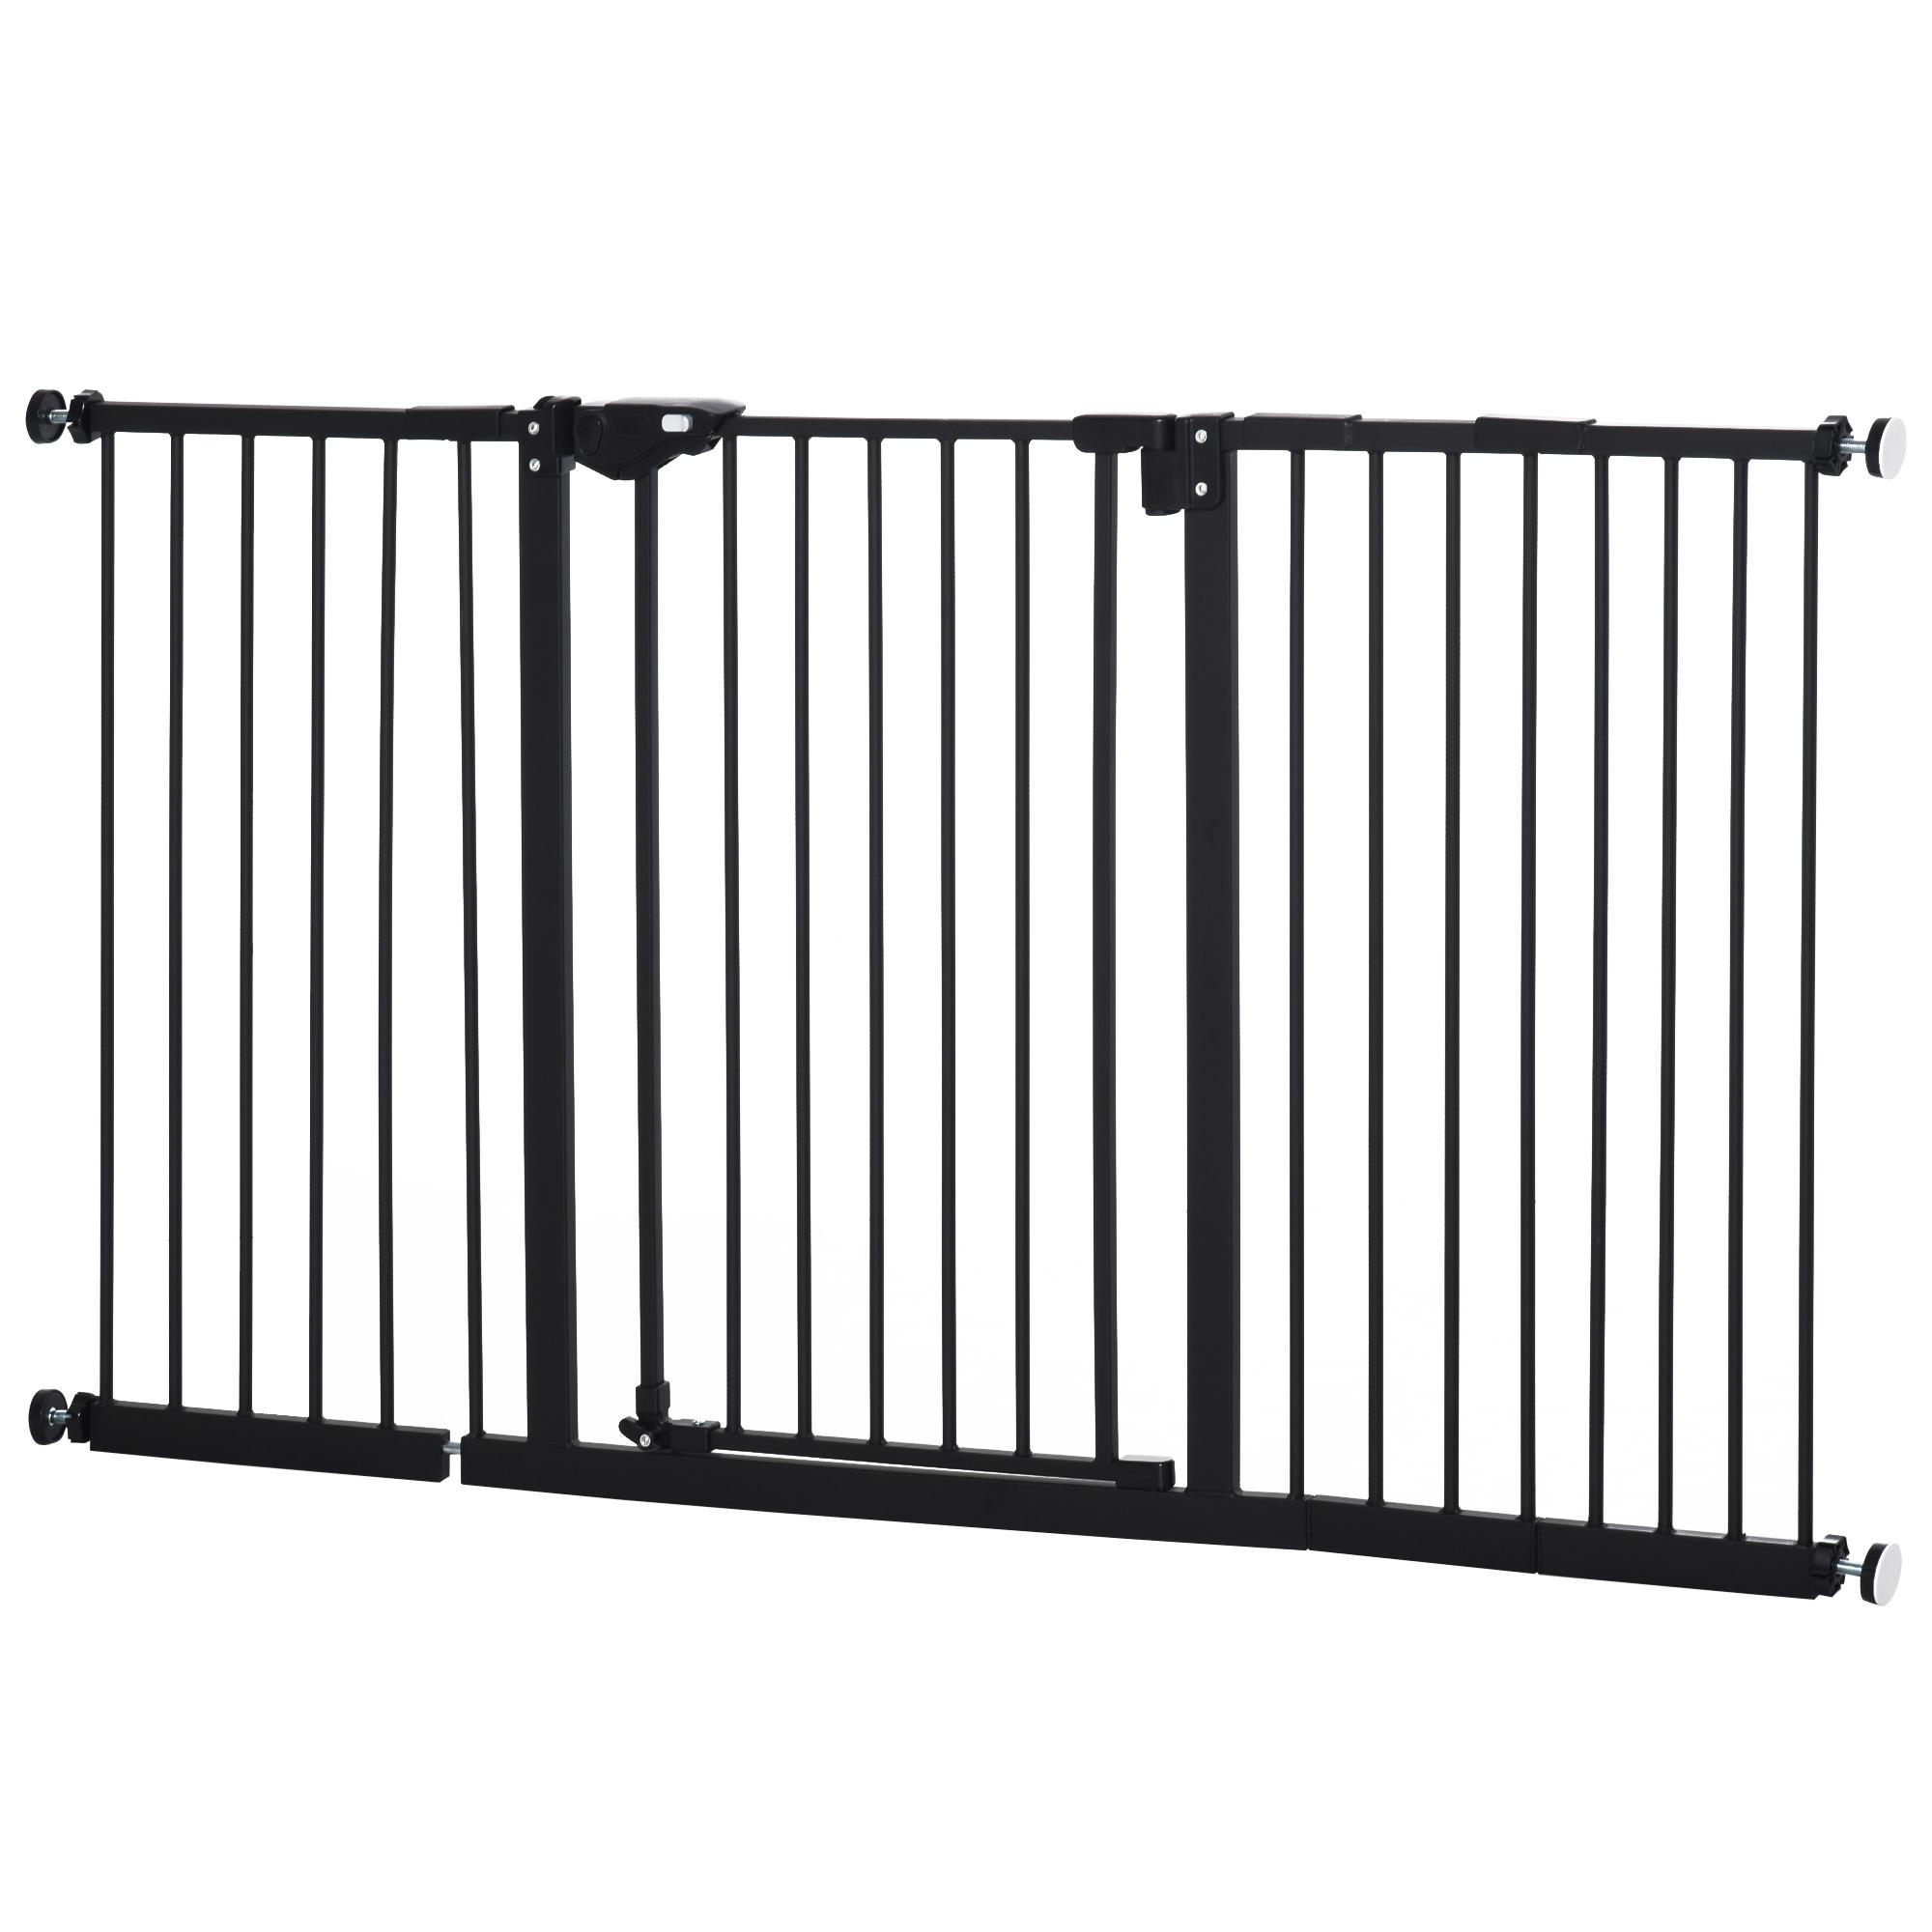 Cancelletto di Sicurezza per Animali Domestici 74 152,3 cm in Metallo Nero